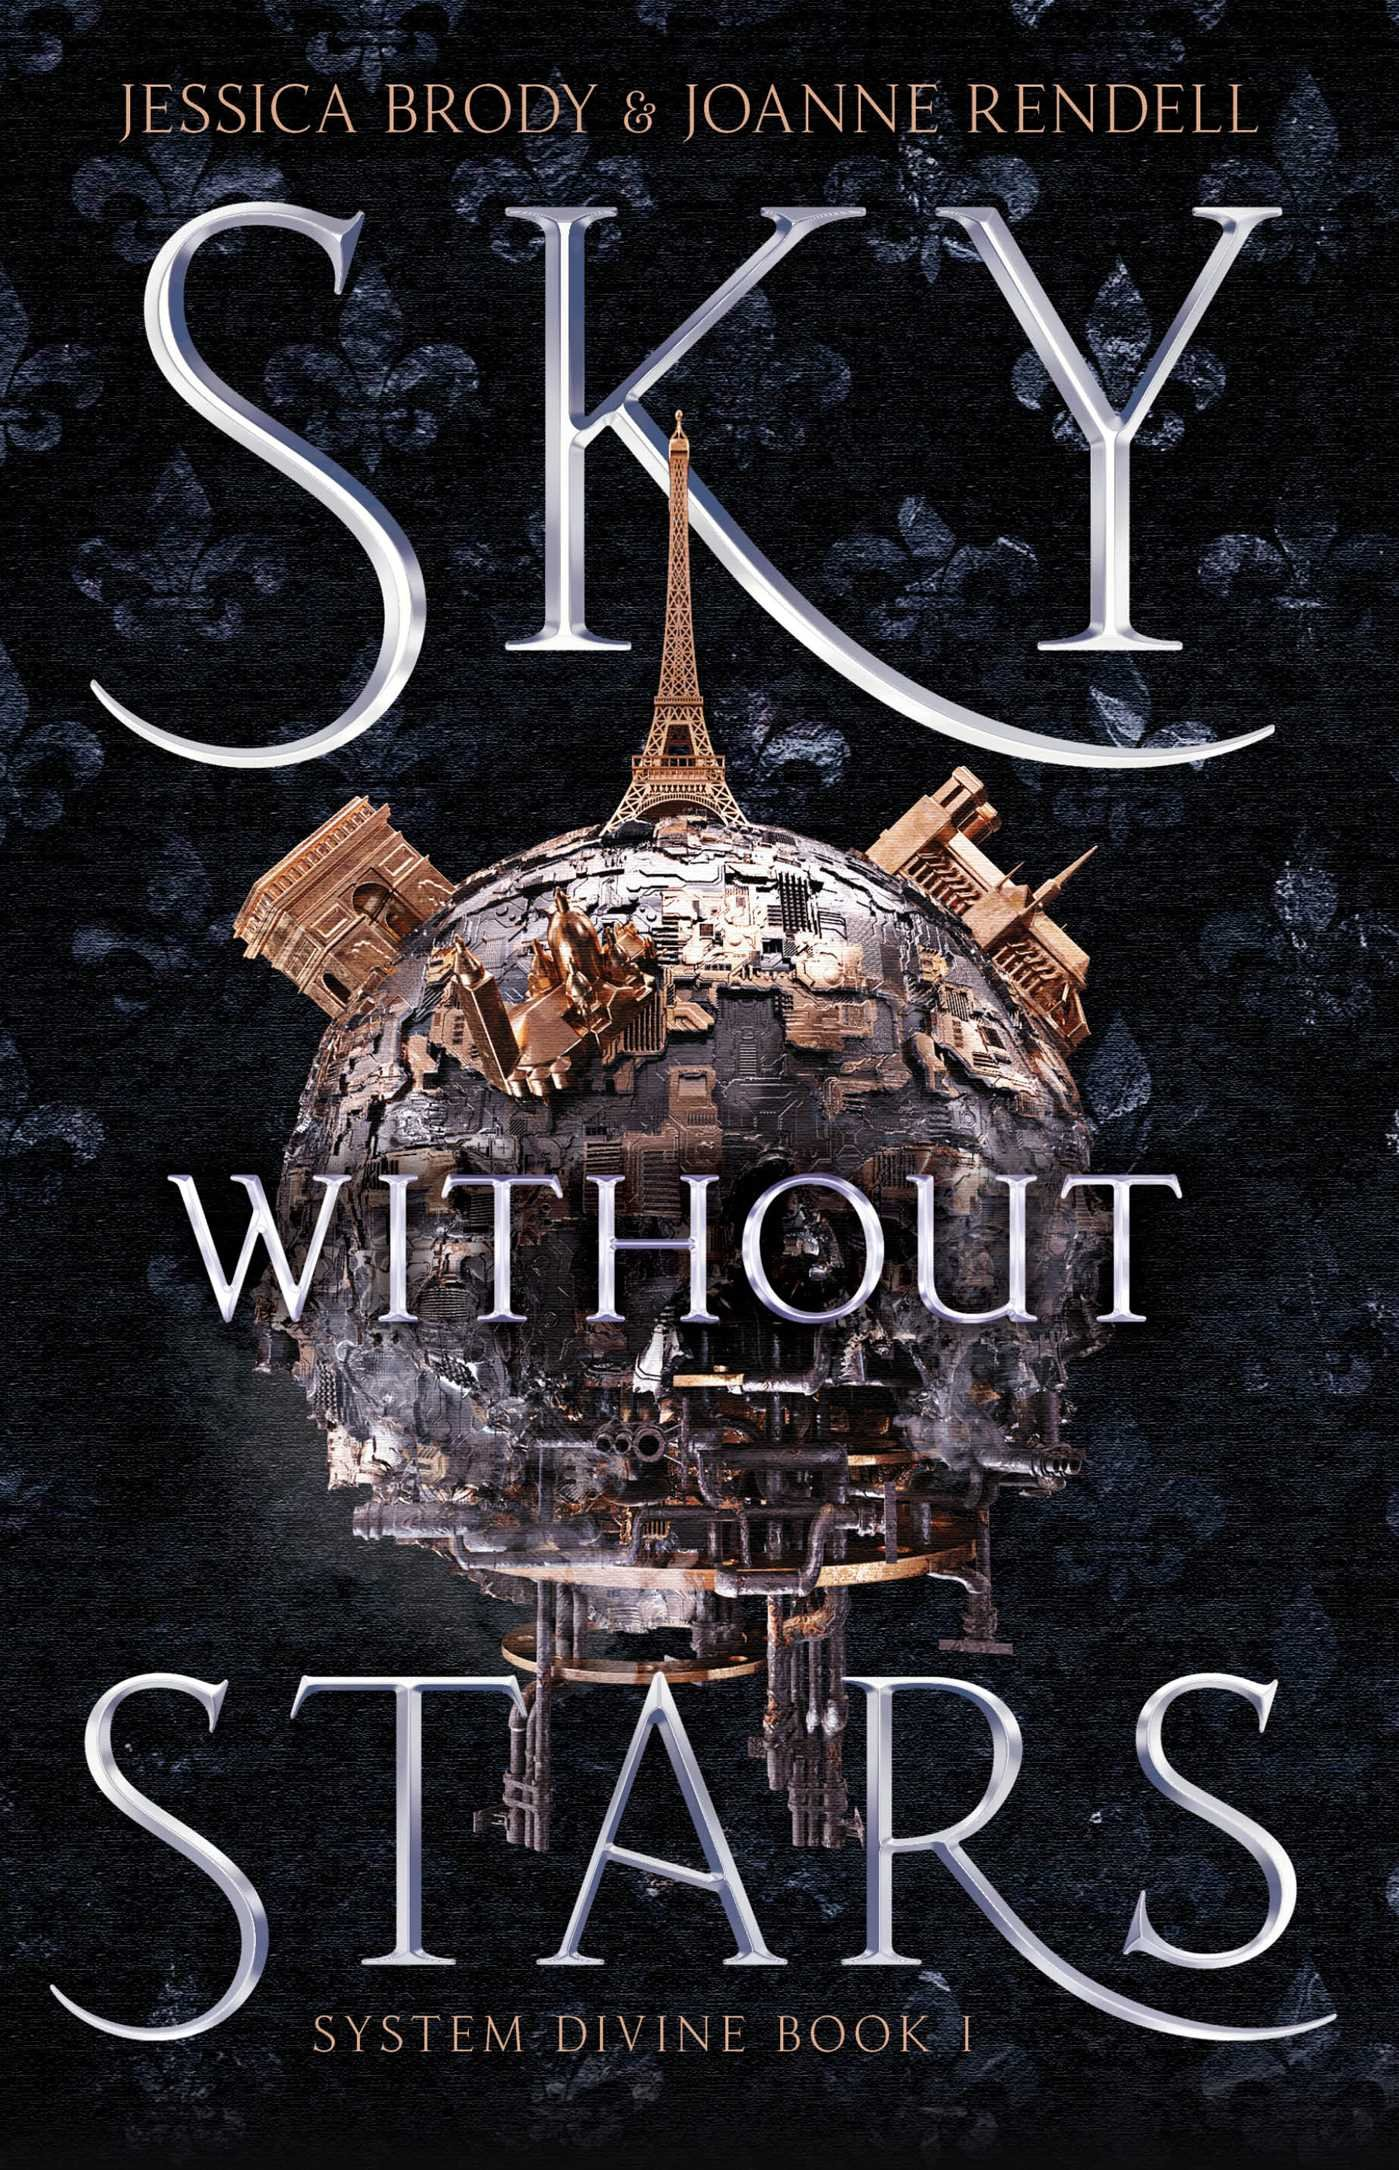 Image result for sky without stars book